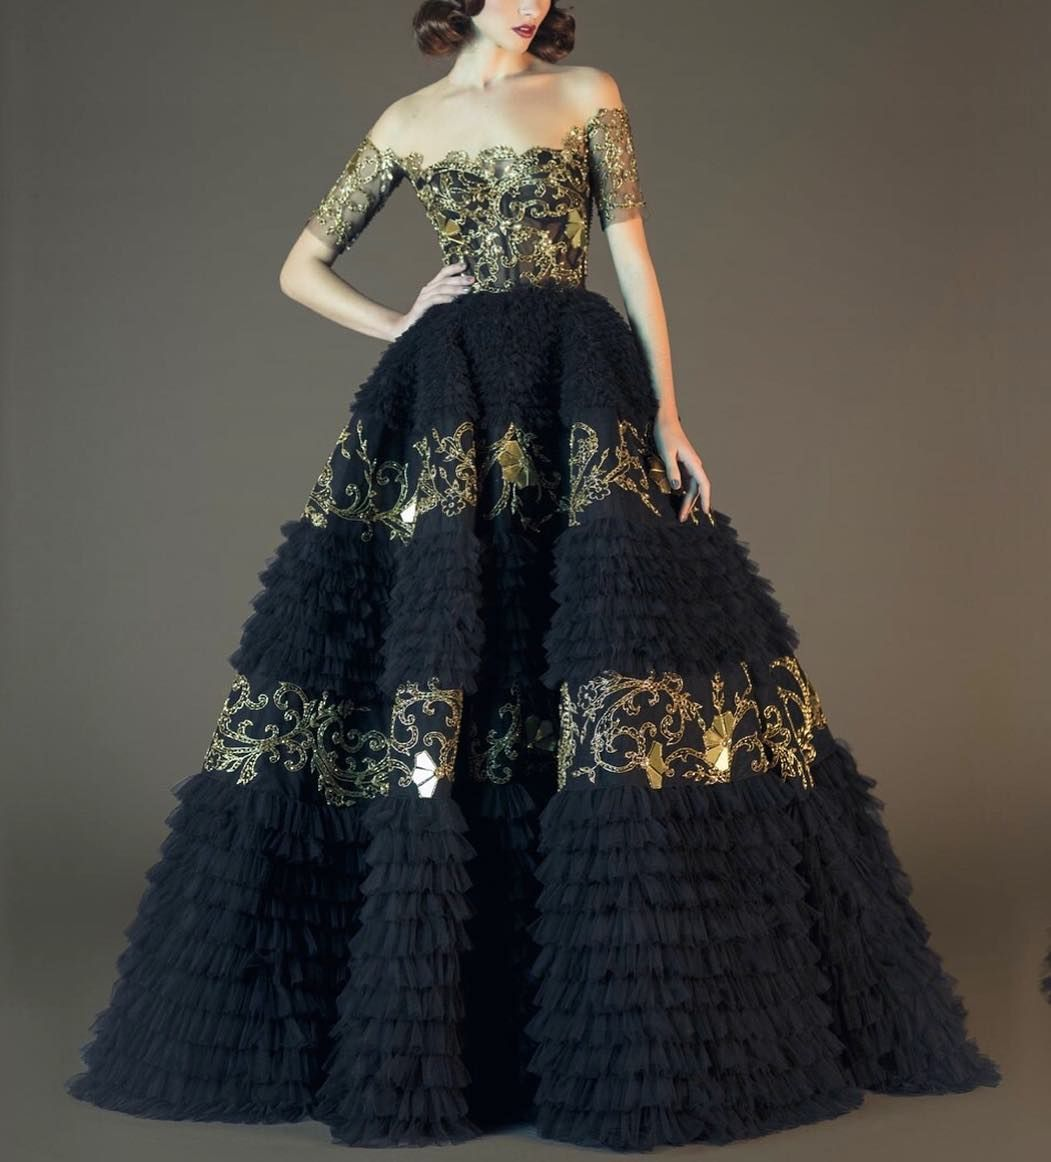 Pin by erika baeza on vestidos pinterest haute couture bb and